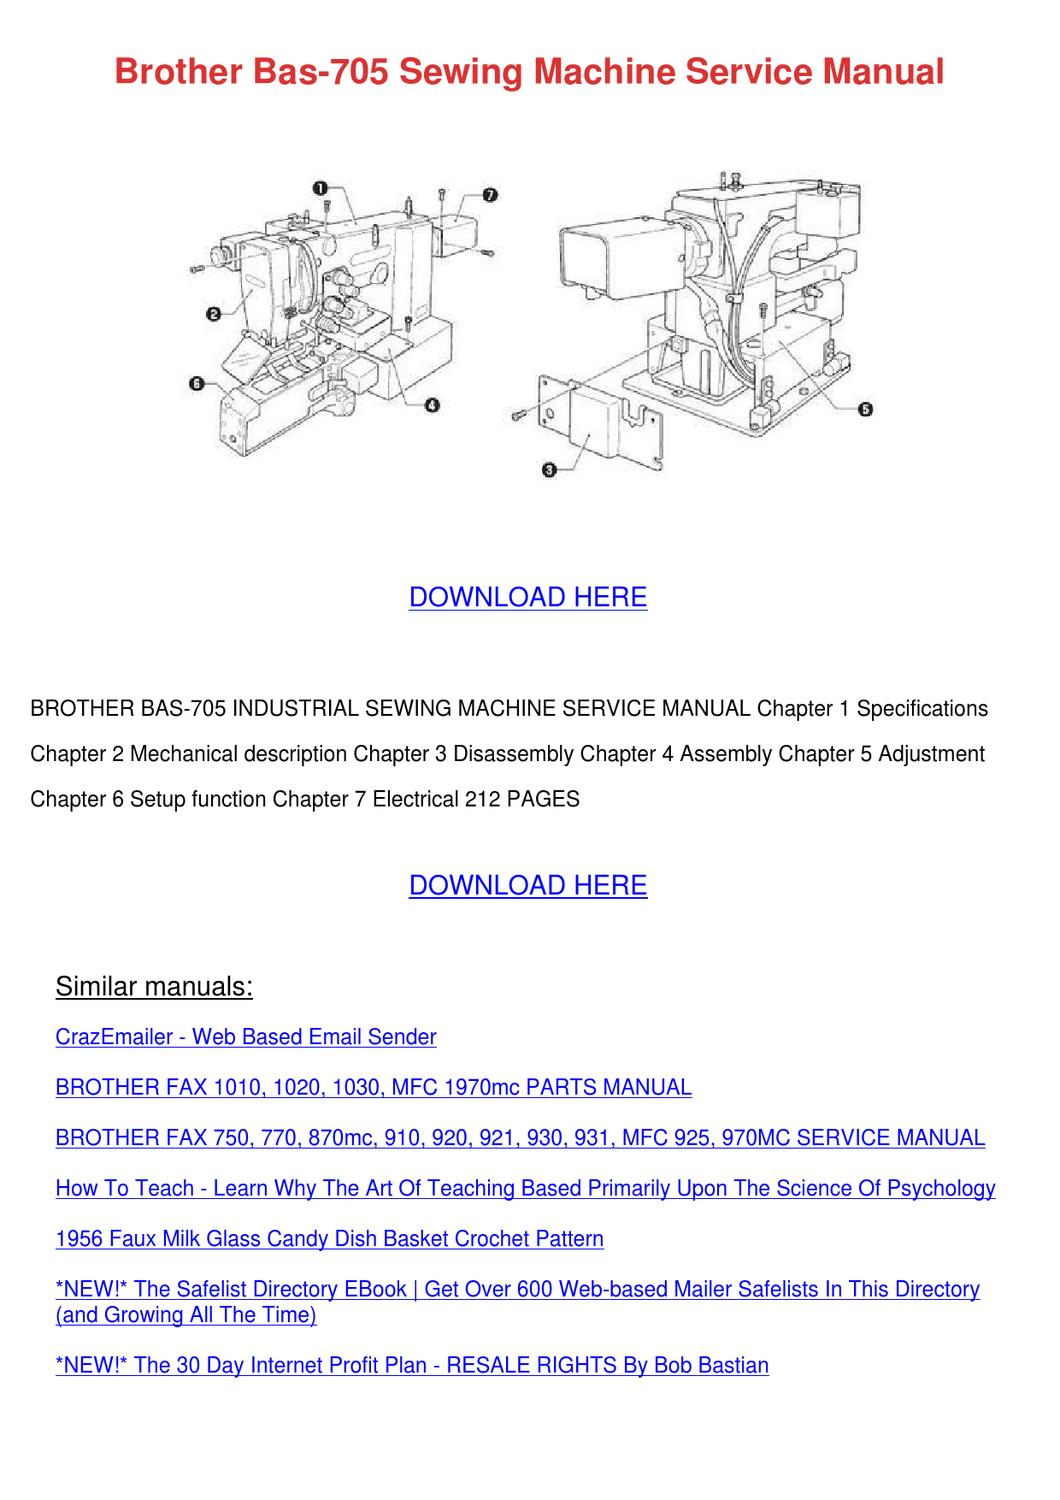 Brother Bas 705 Sewing Machine Service Manual by Cathi Keegan - issuu